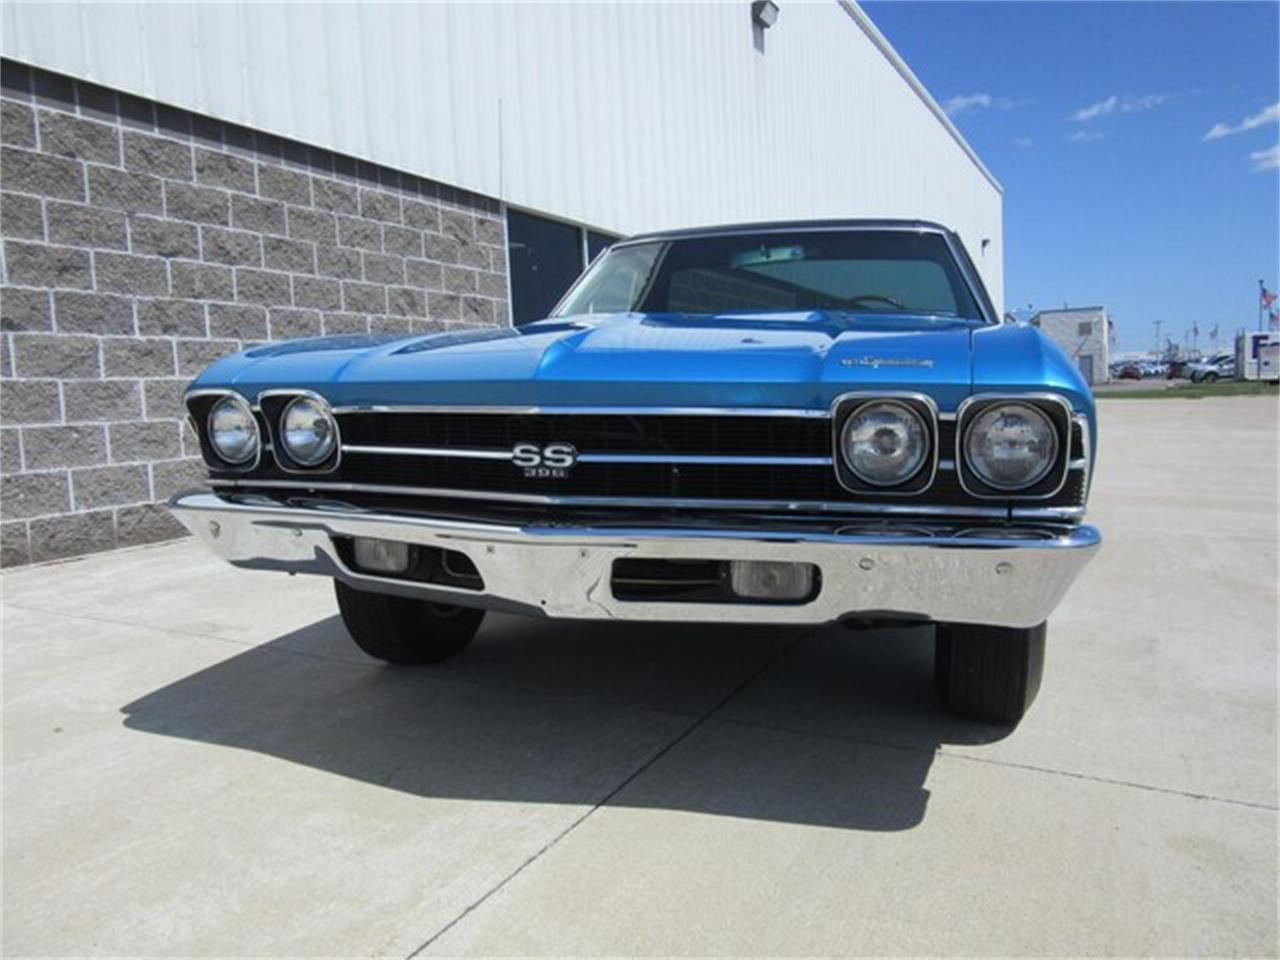 Large Picture of Classic 1969 El Camino located in Greenwood Indiana - $38,500.00 Offered by Ray Skillman Classic Cars - QTRB